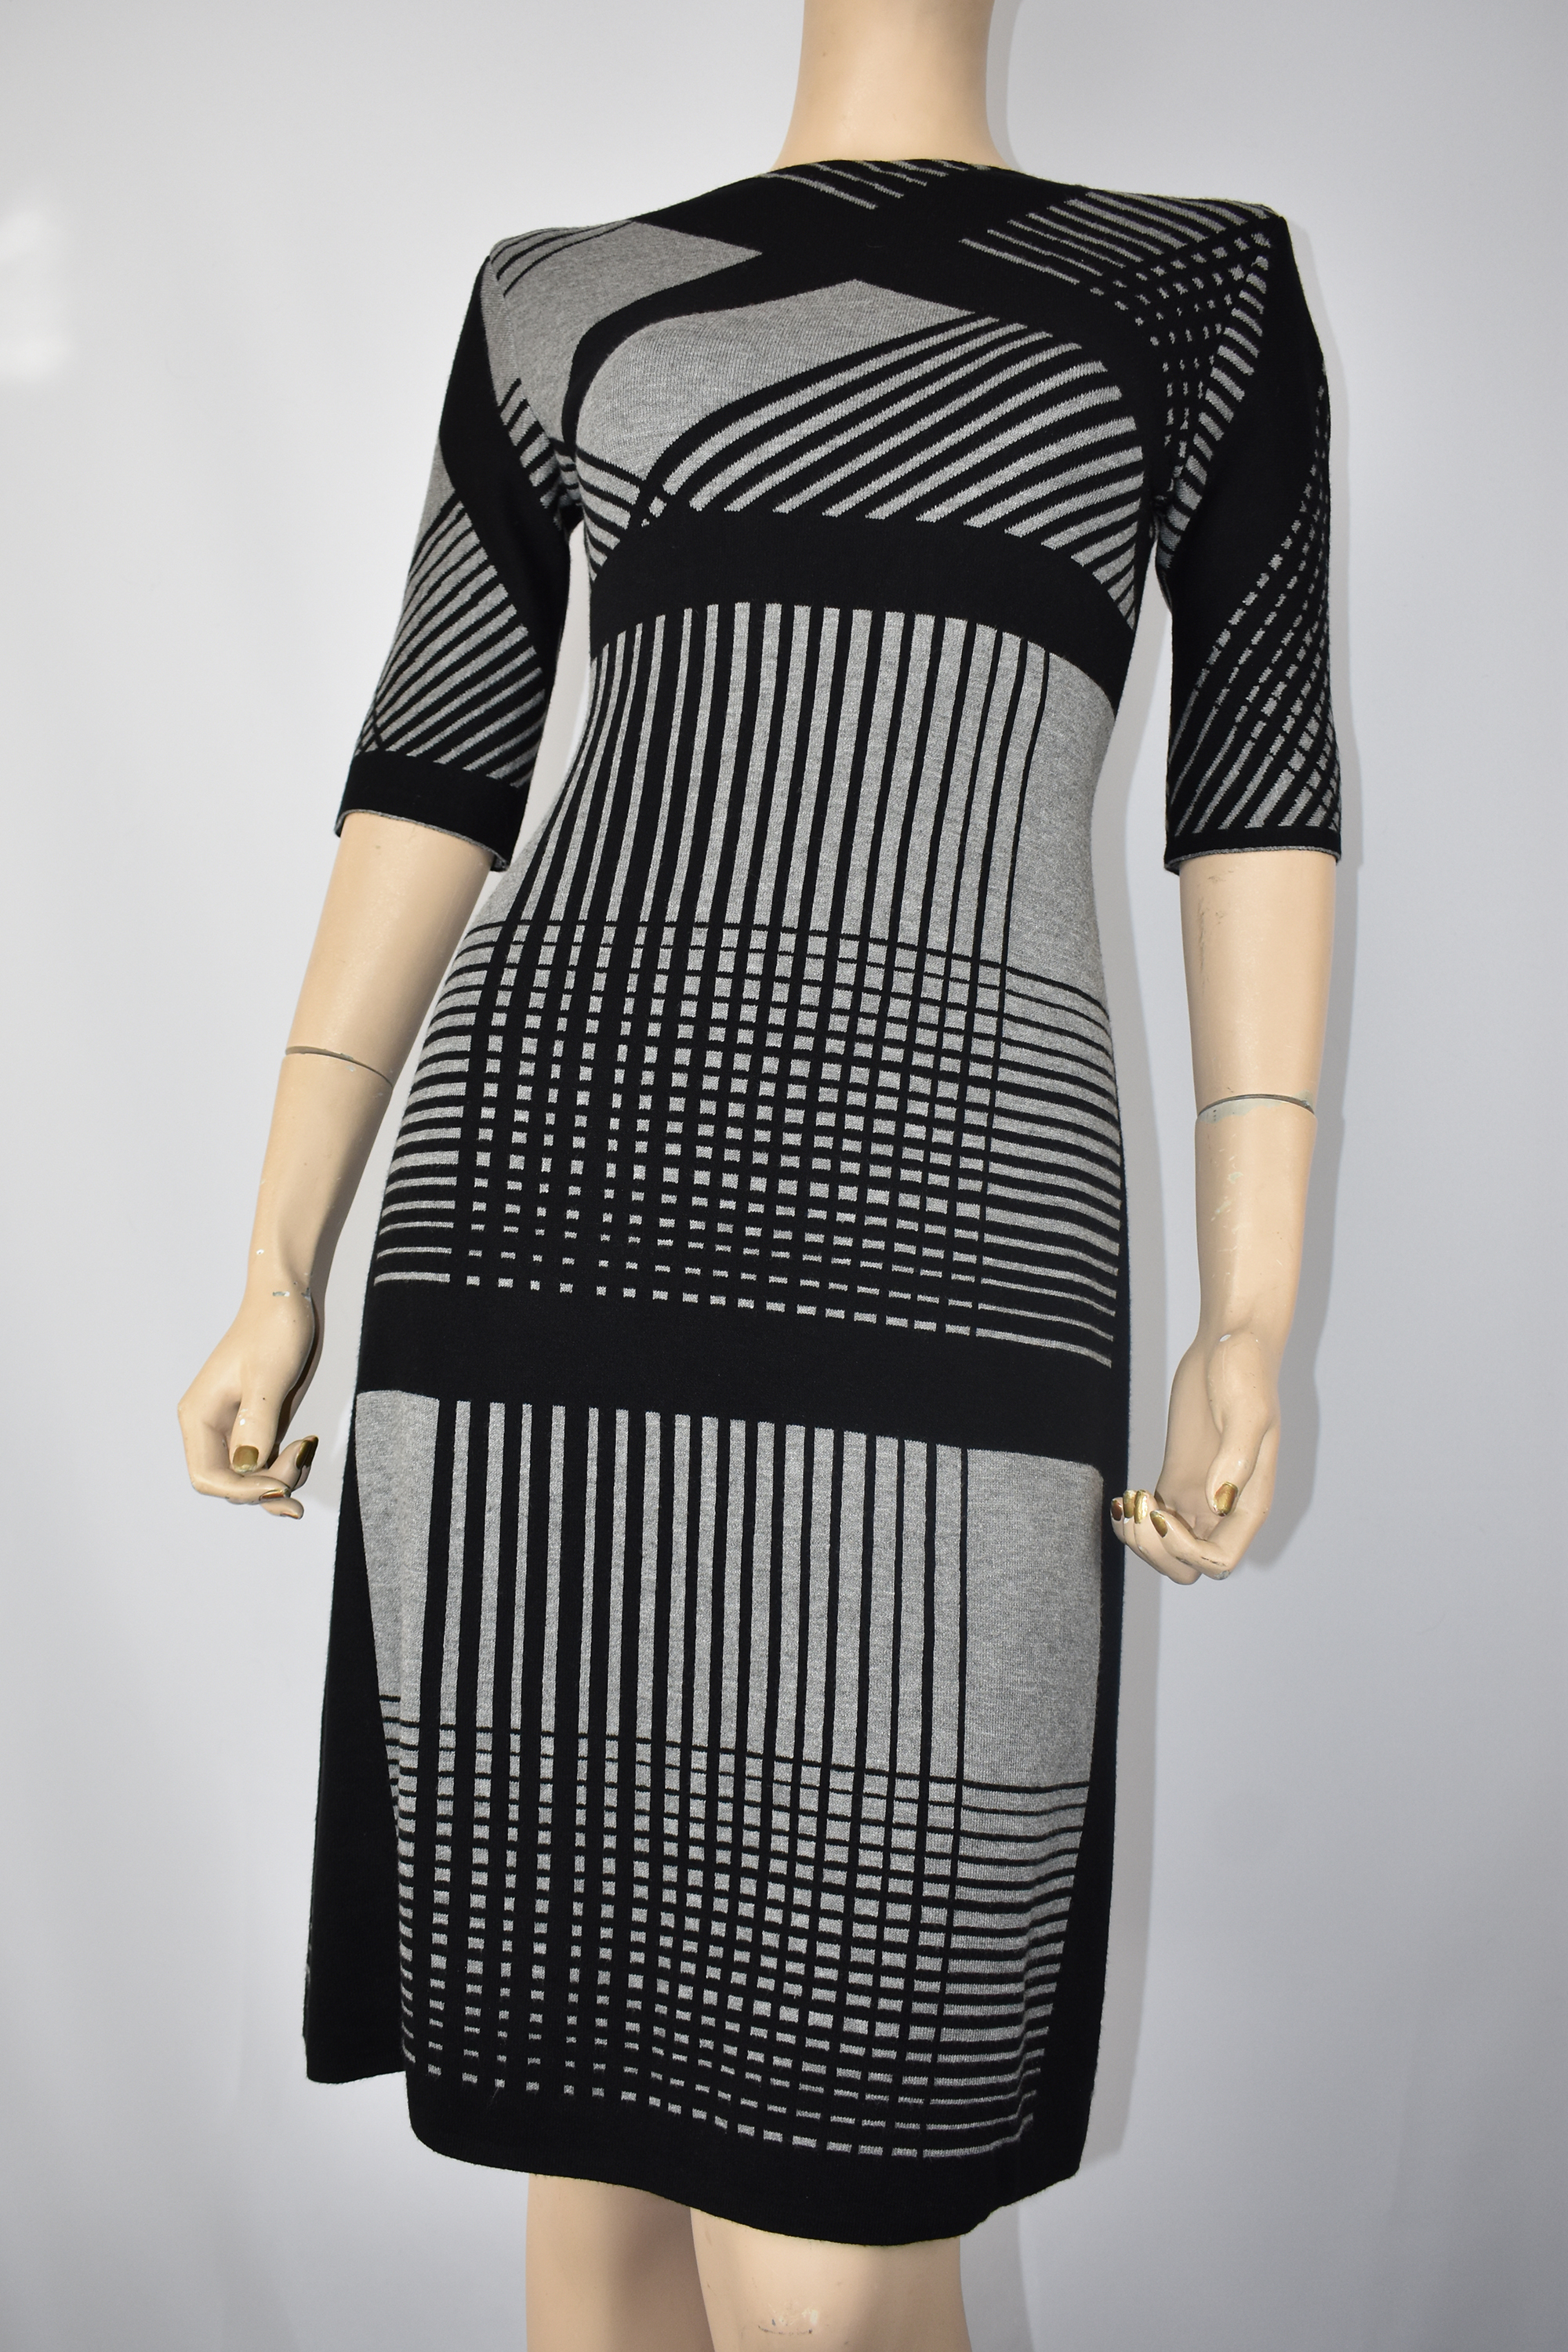 Black and Gray knit dress